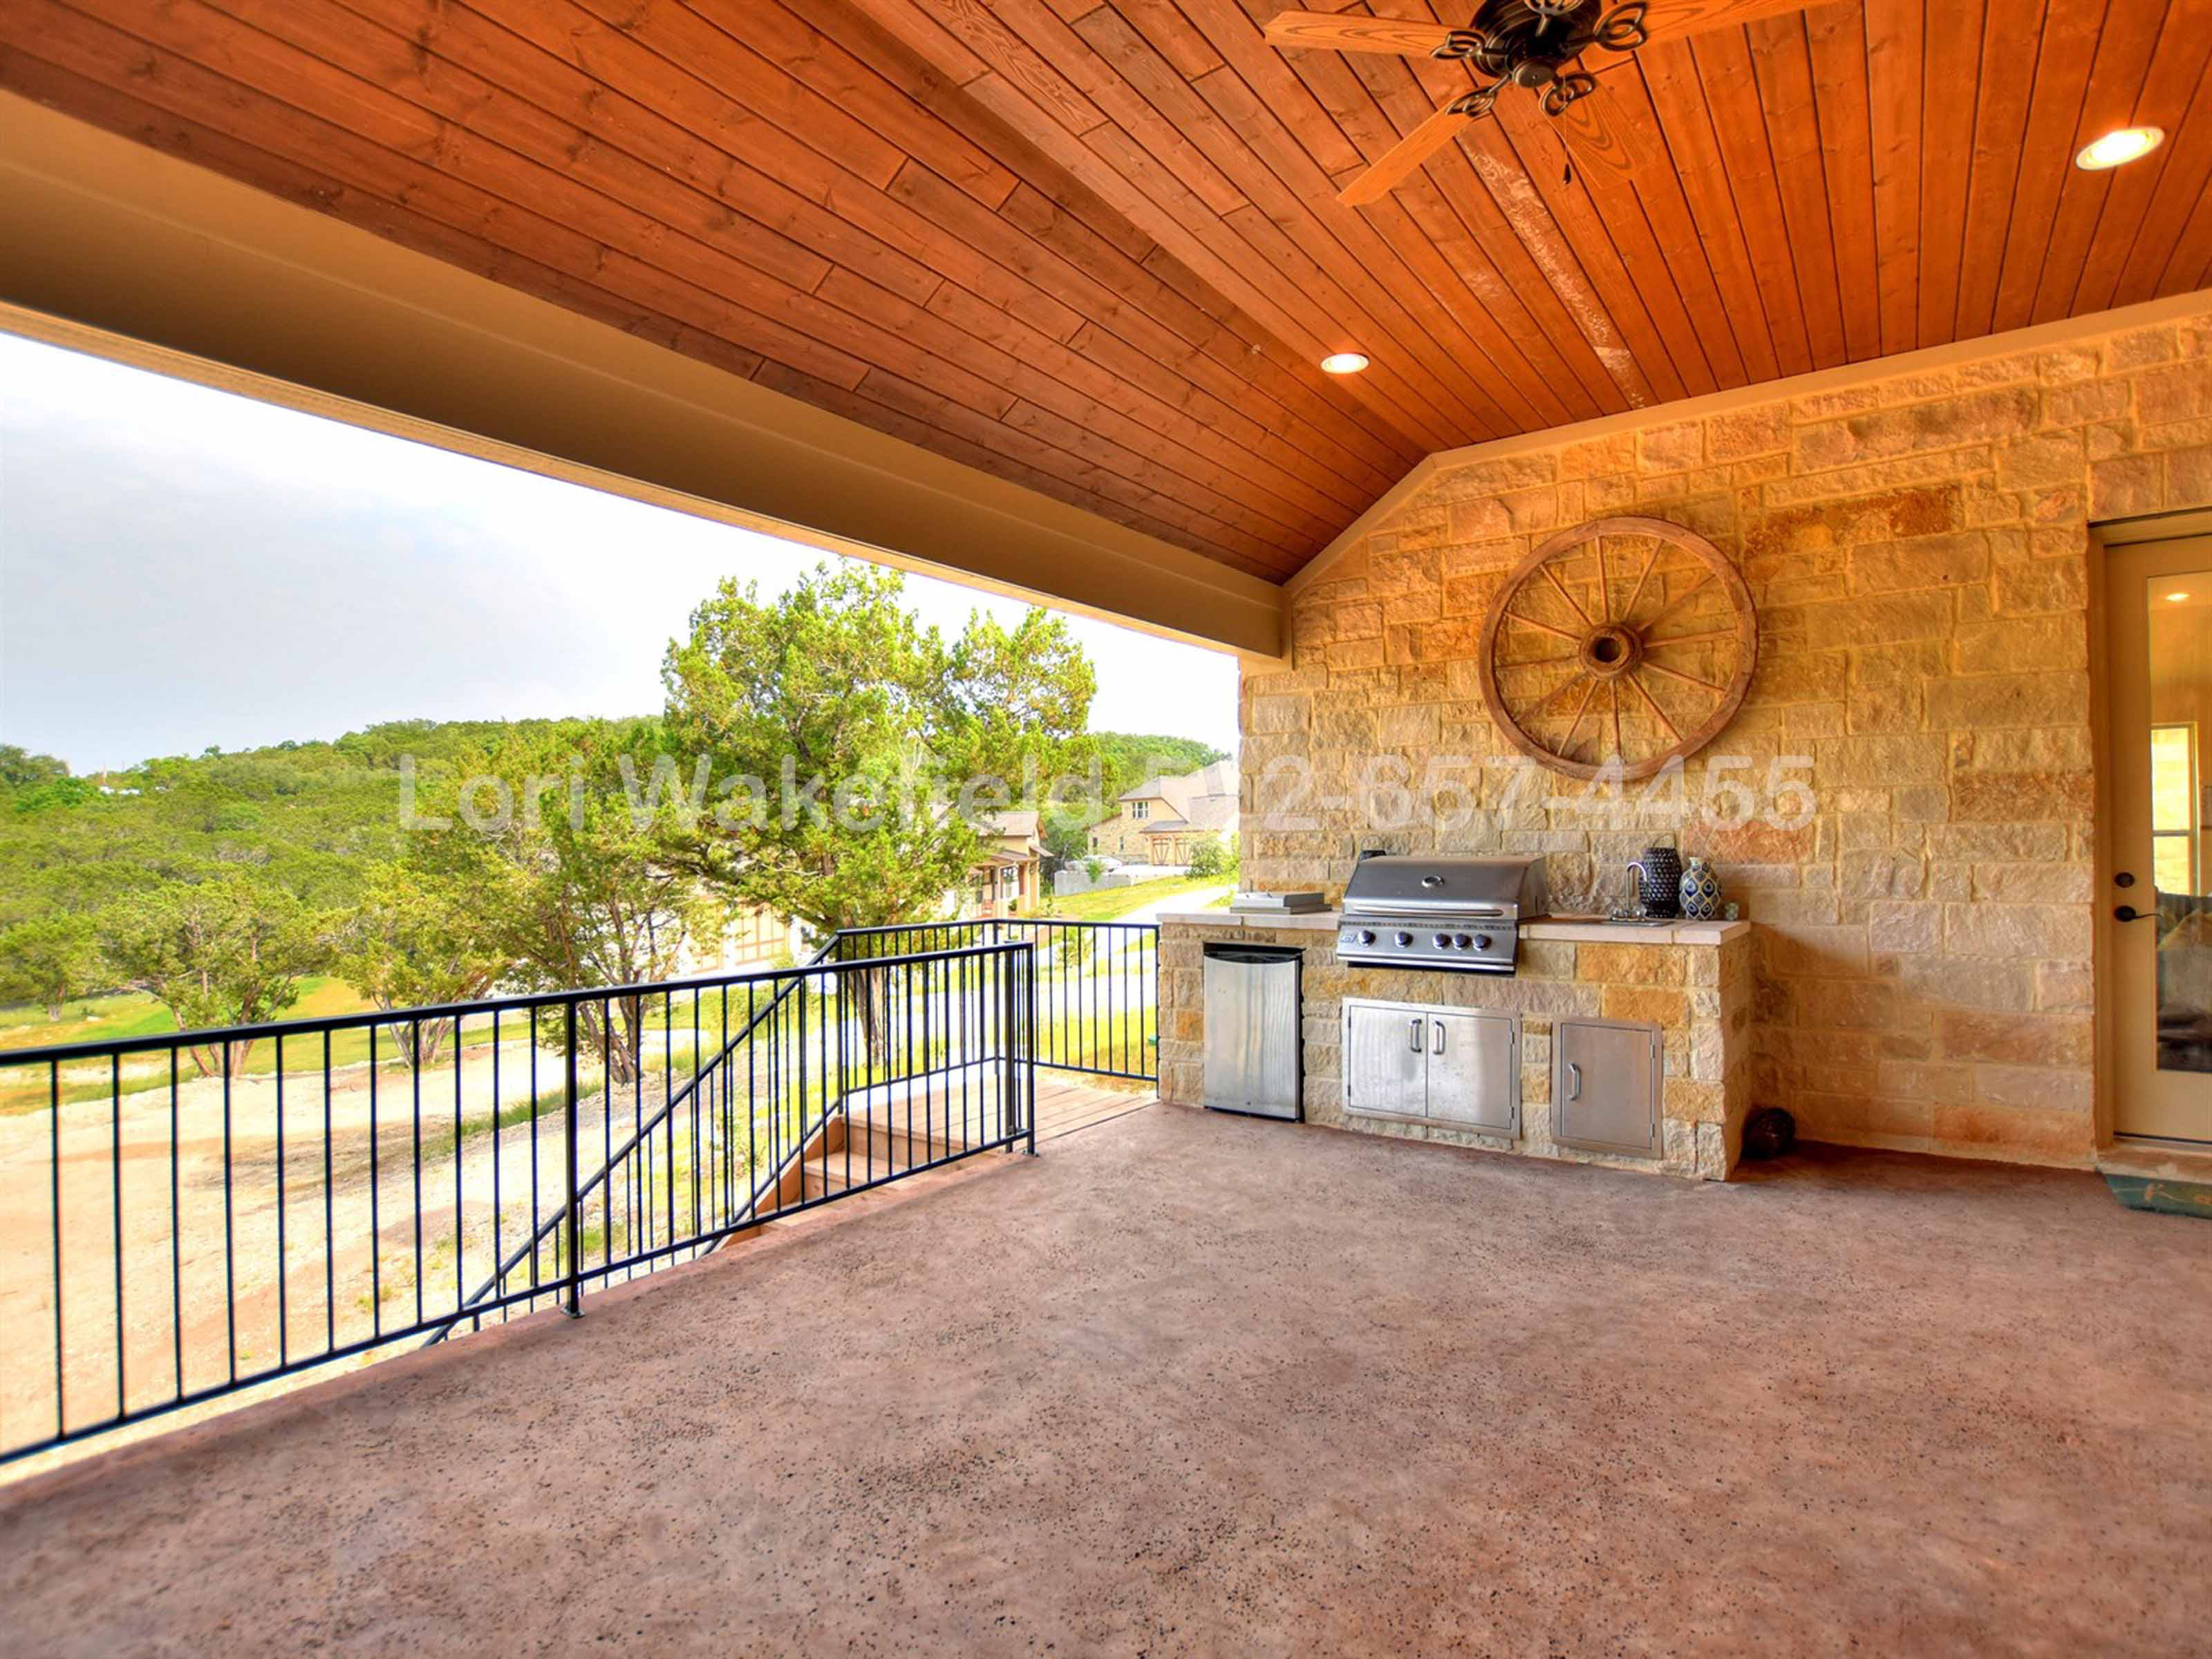 5421 Diamante Dr Spicewood TX | Home for Sale in Lake Travis ISD | www.AustinRealEstateGroup.com